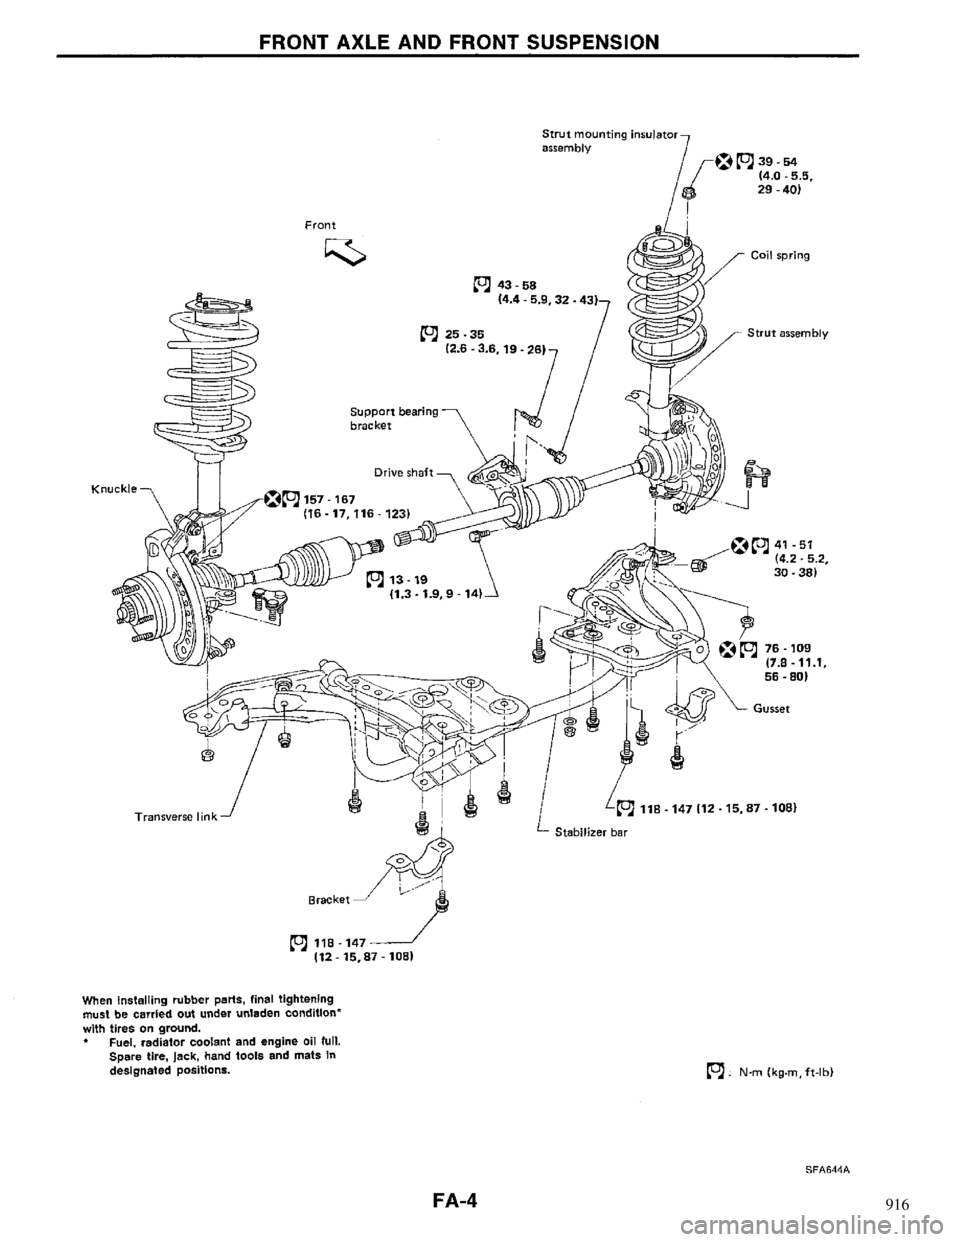 2007 Nissan Maxima Front Suspension Diagram Recomended Car Wiring Cefiro A32 98 Altima Auto Electrical